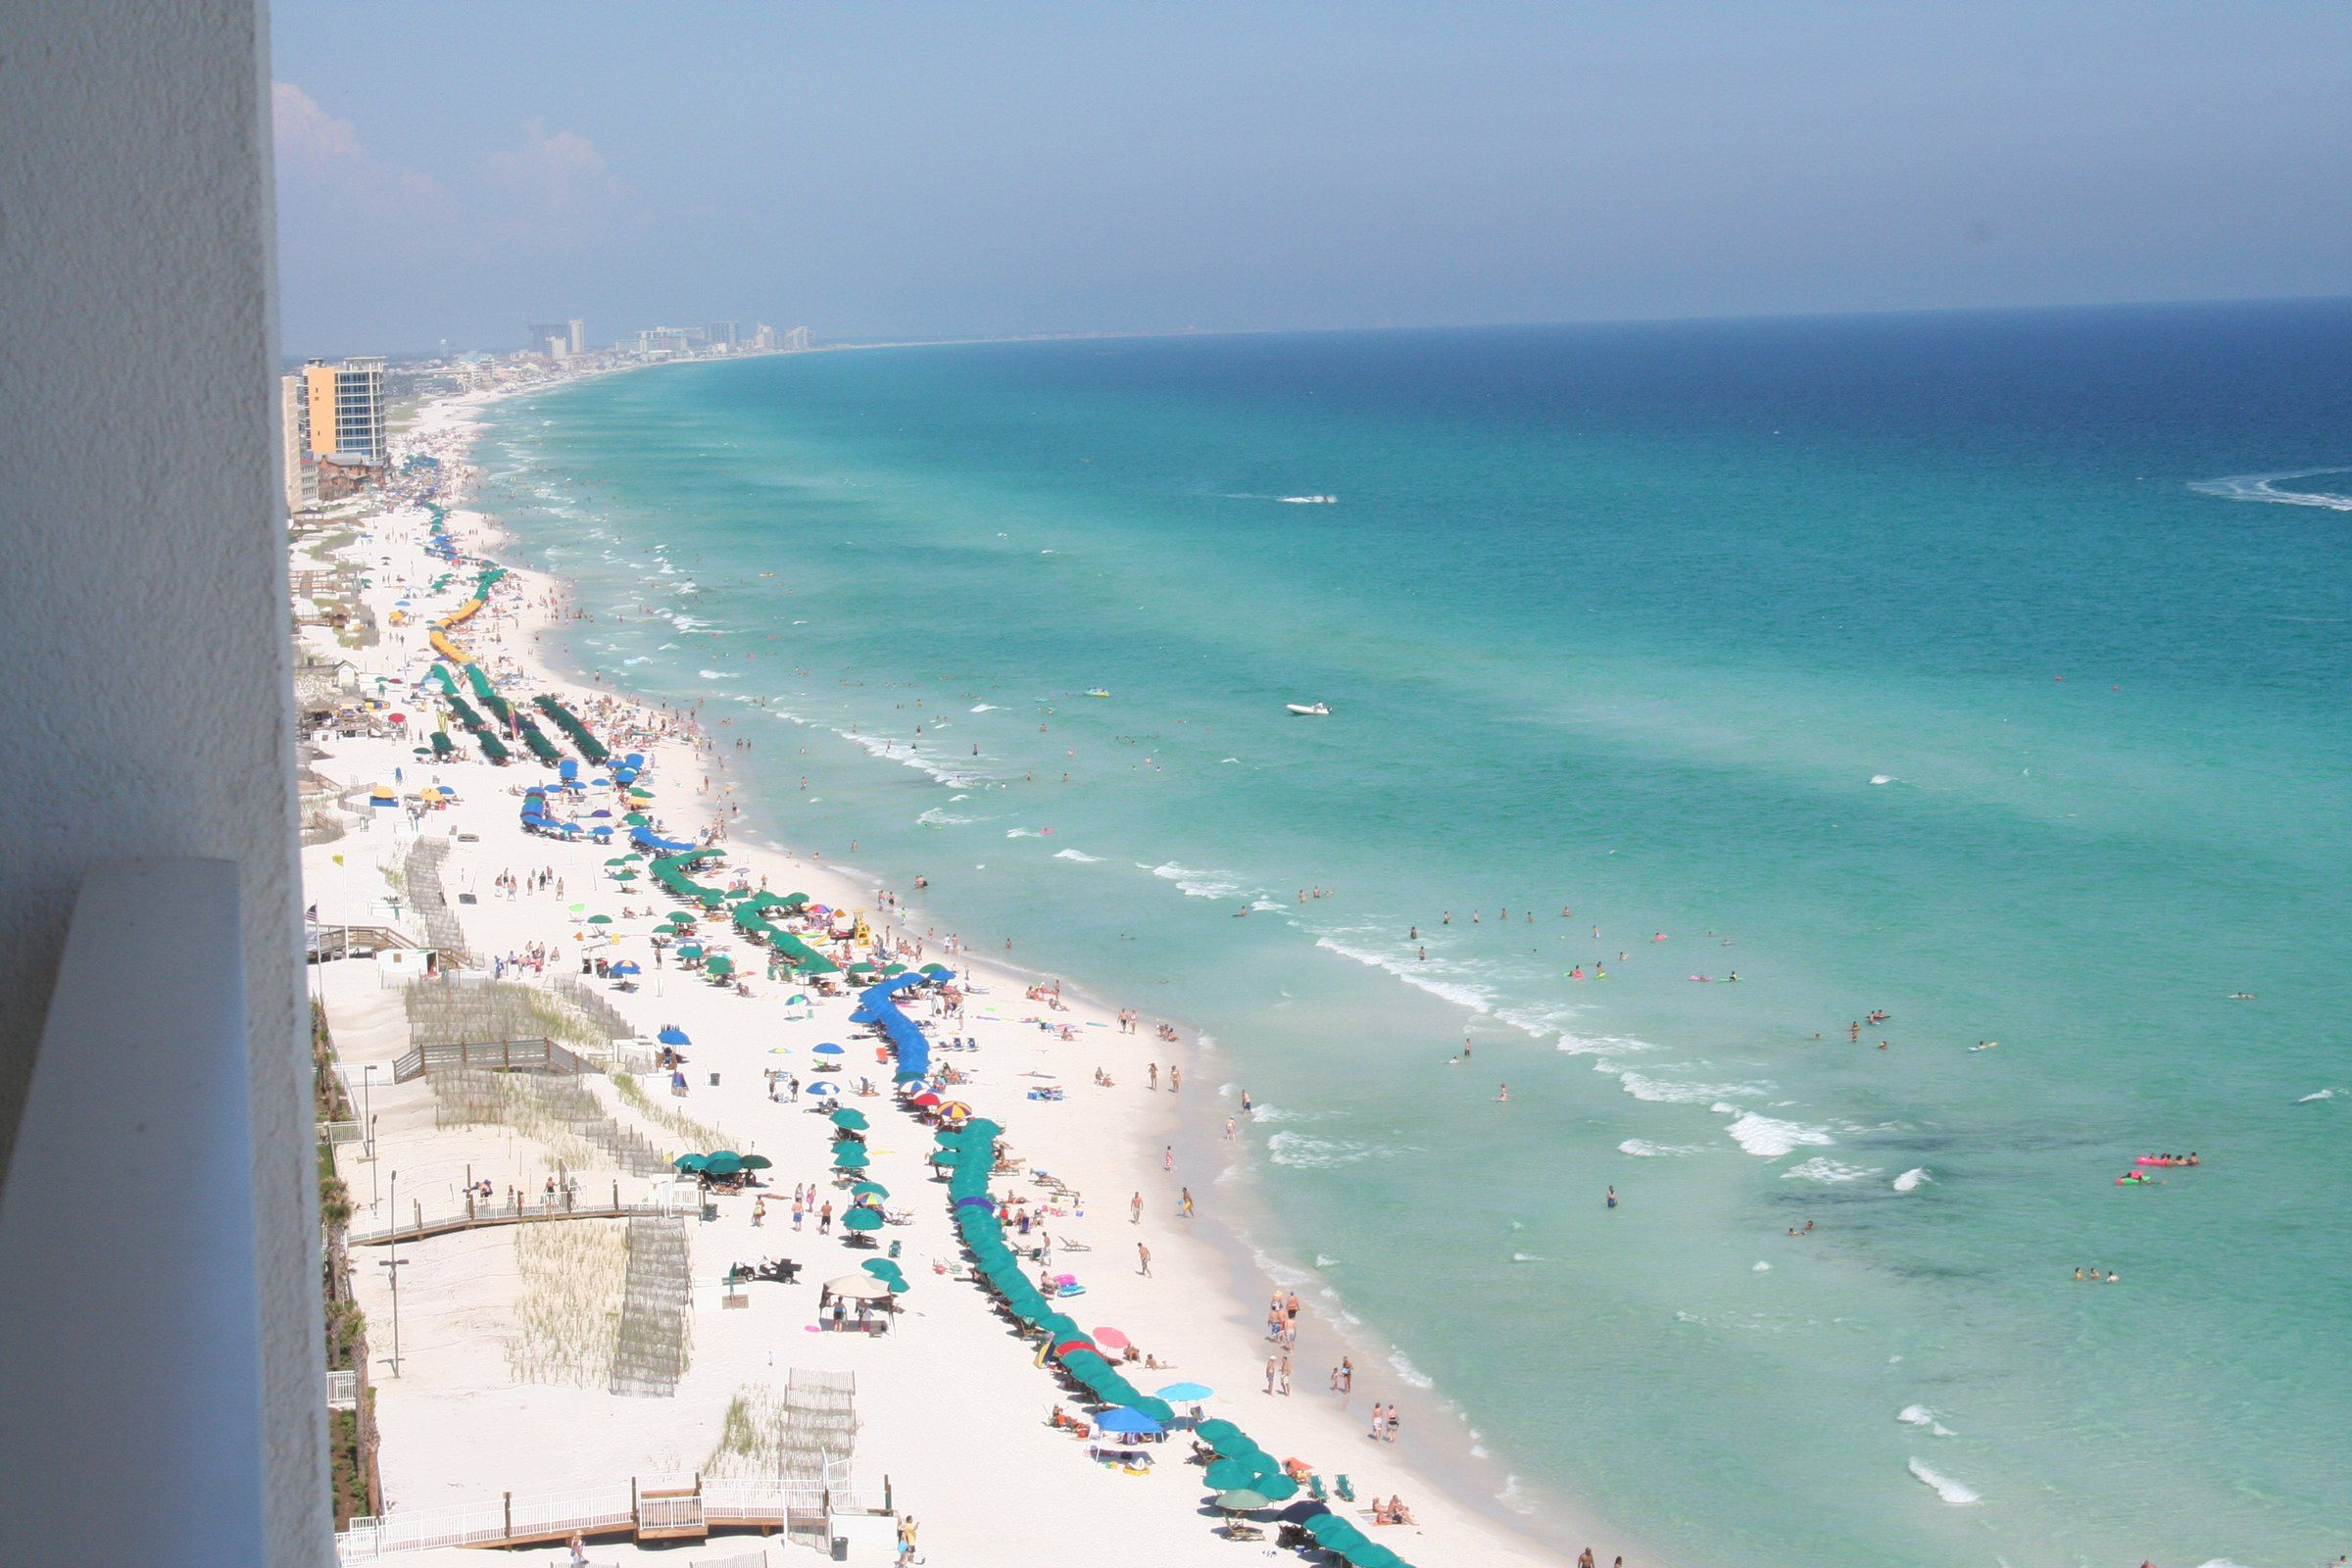 My Favorite Place To Go Fort Walton Beach White Sand And Turquoise Water